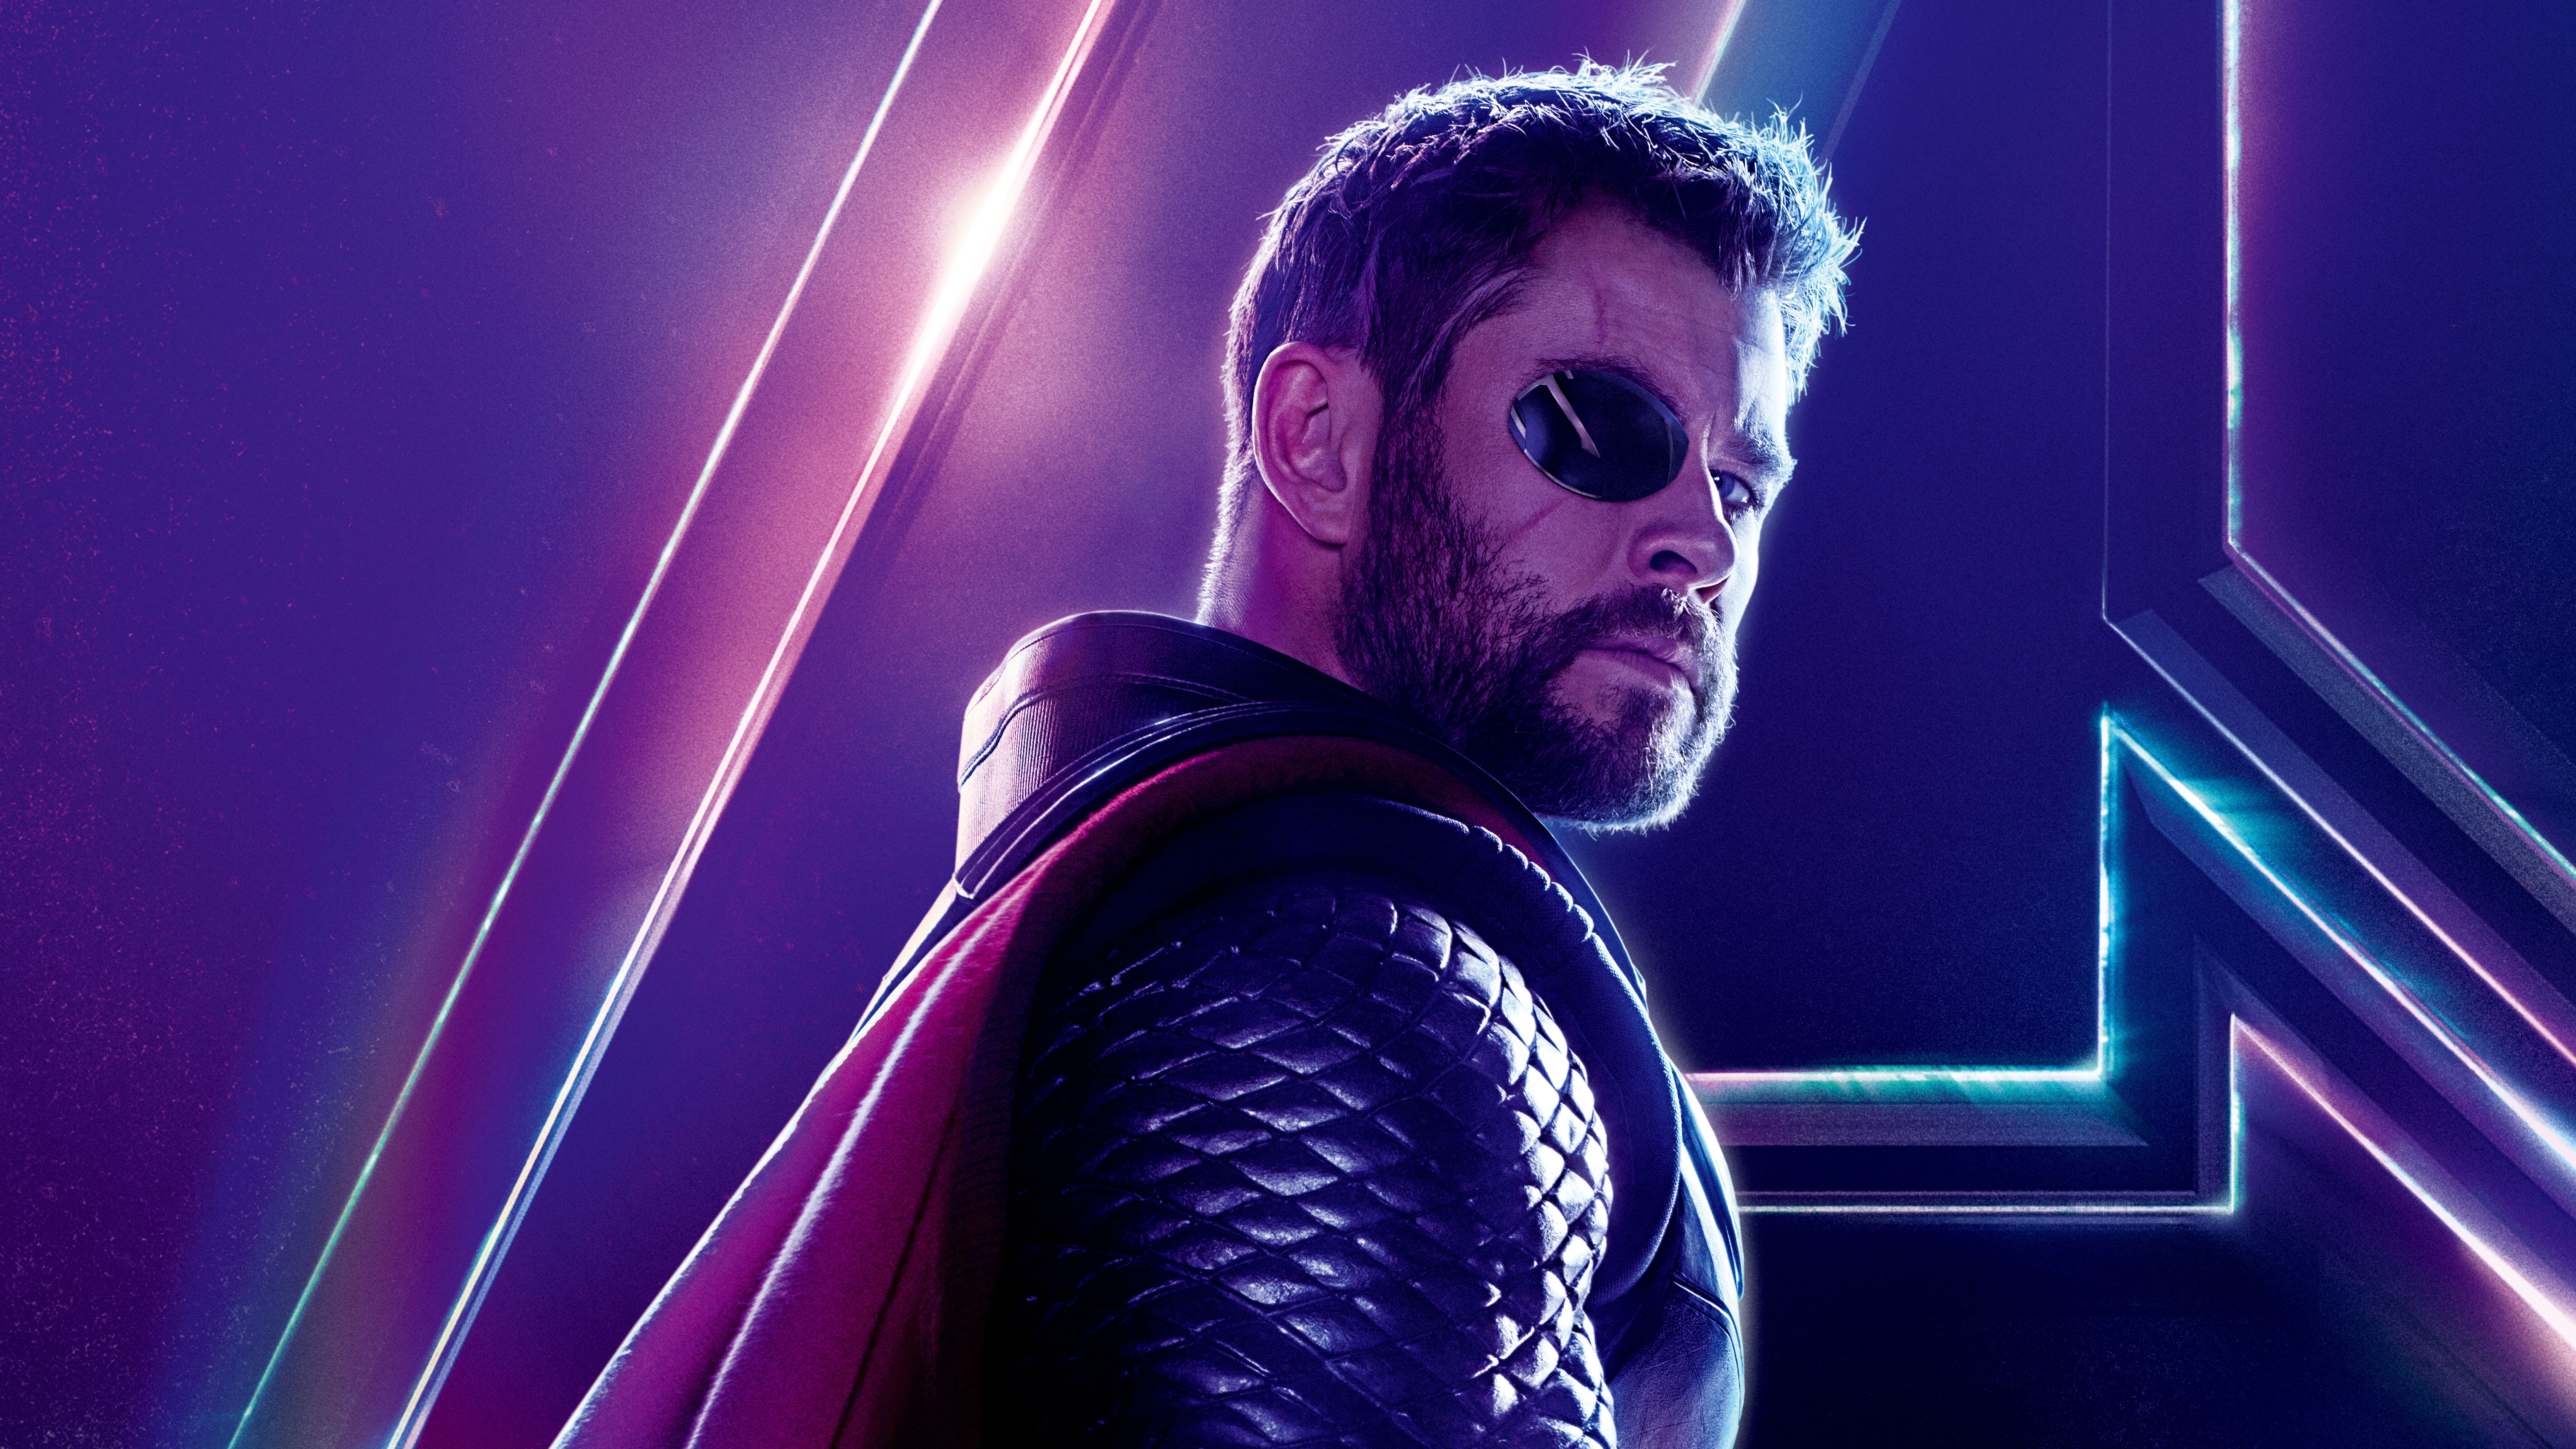 Thor In Avengers Infinity War New 8k Poster, HD Movies, 4k ...